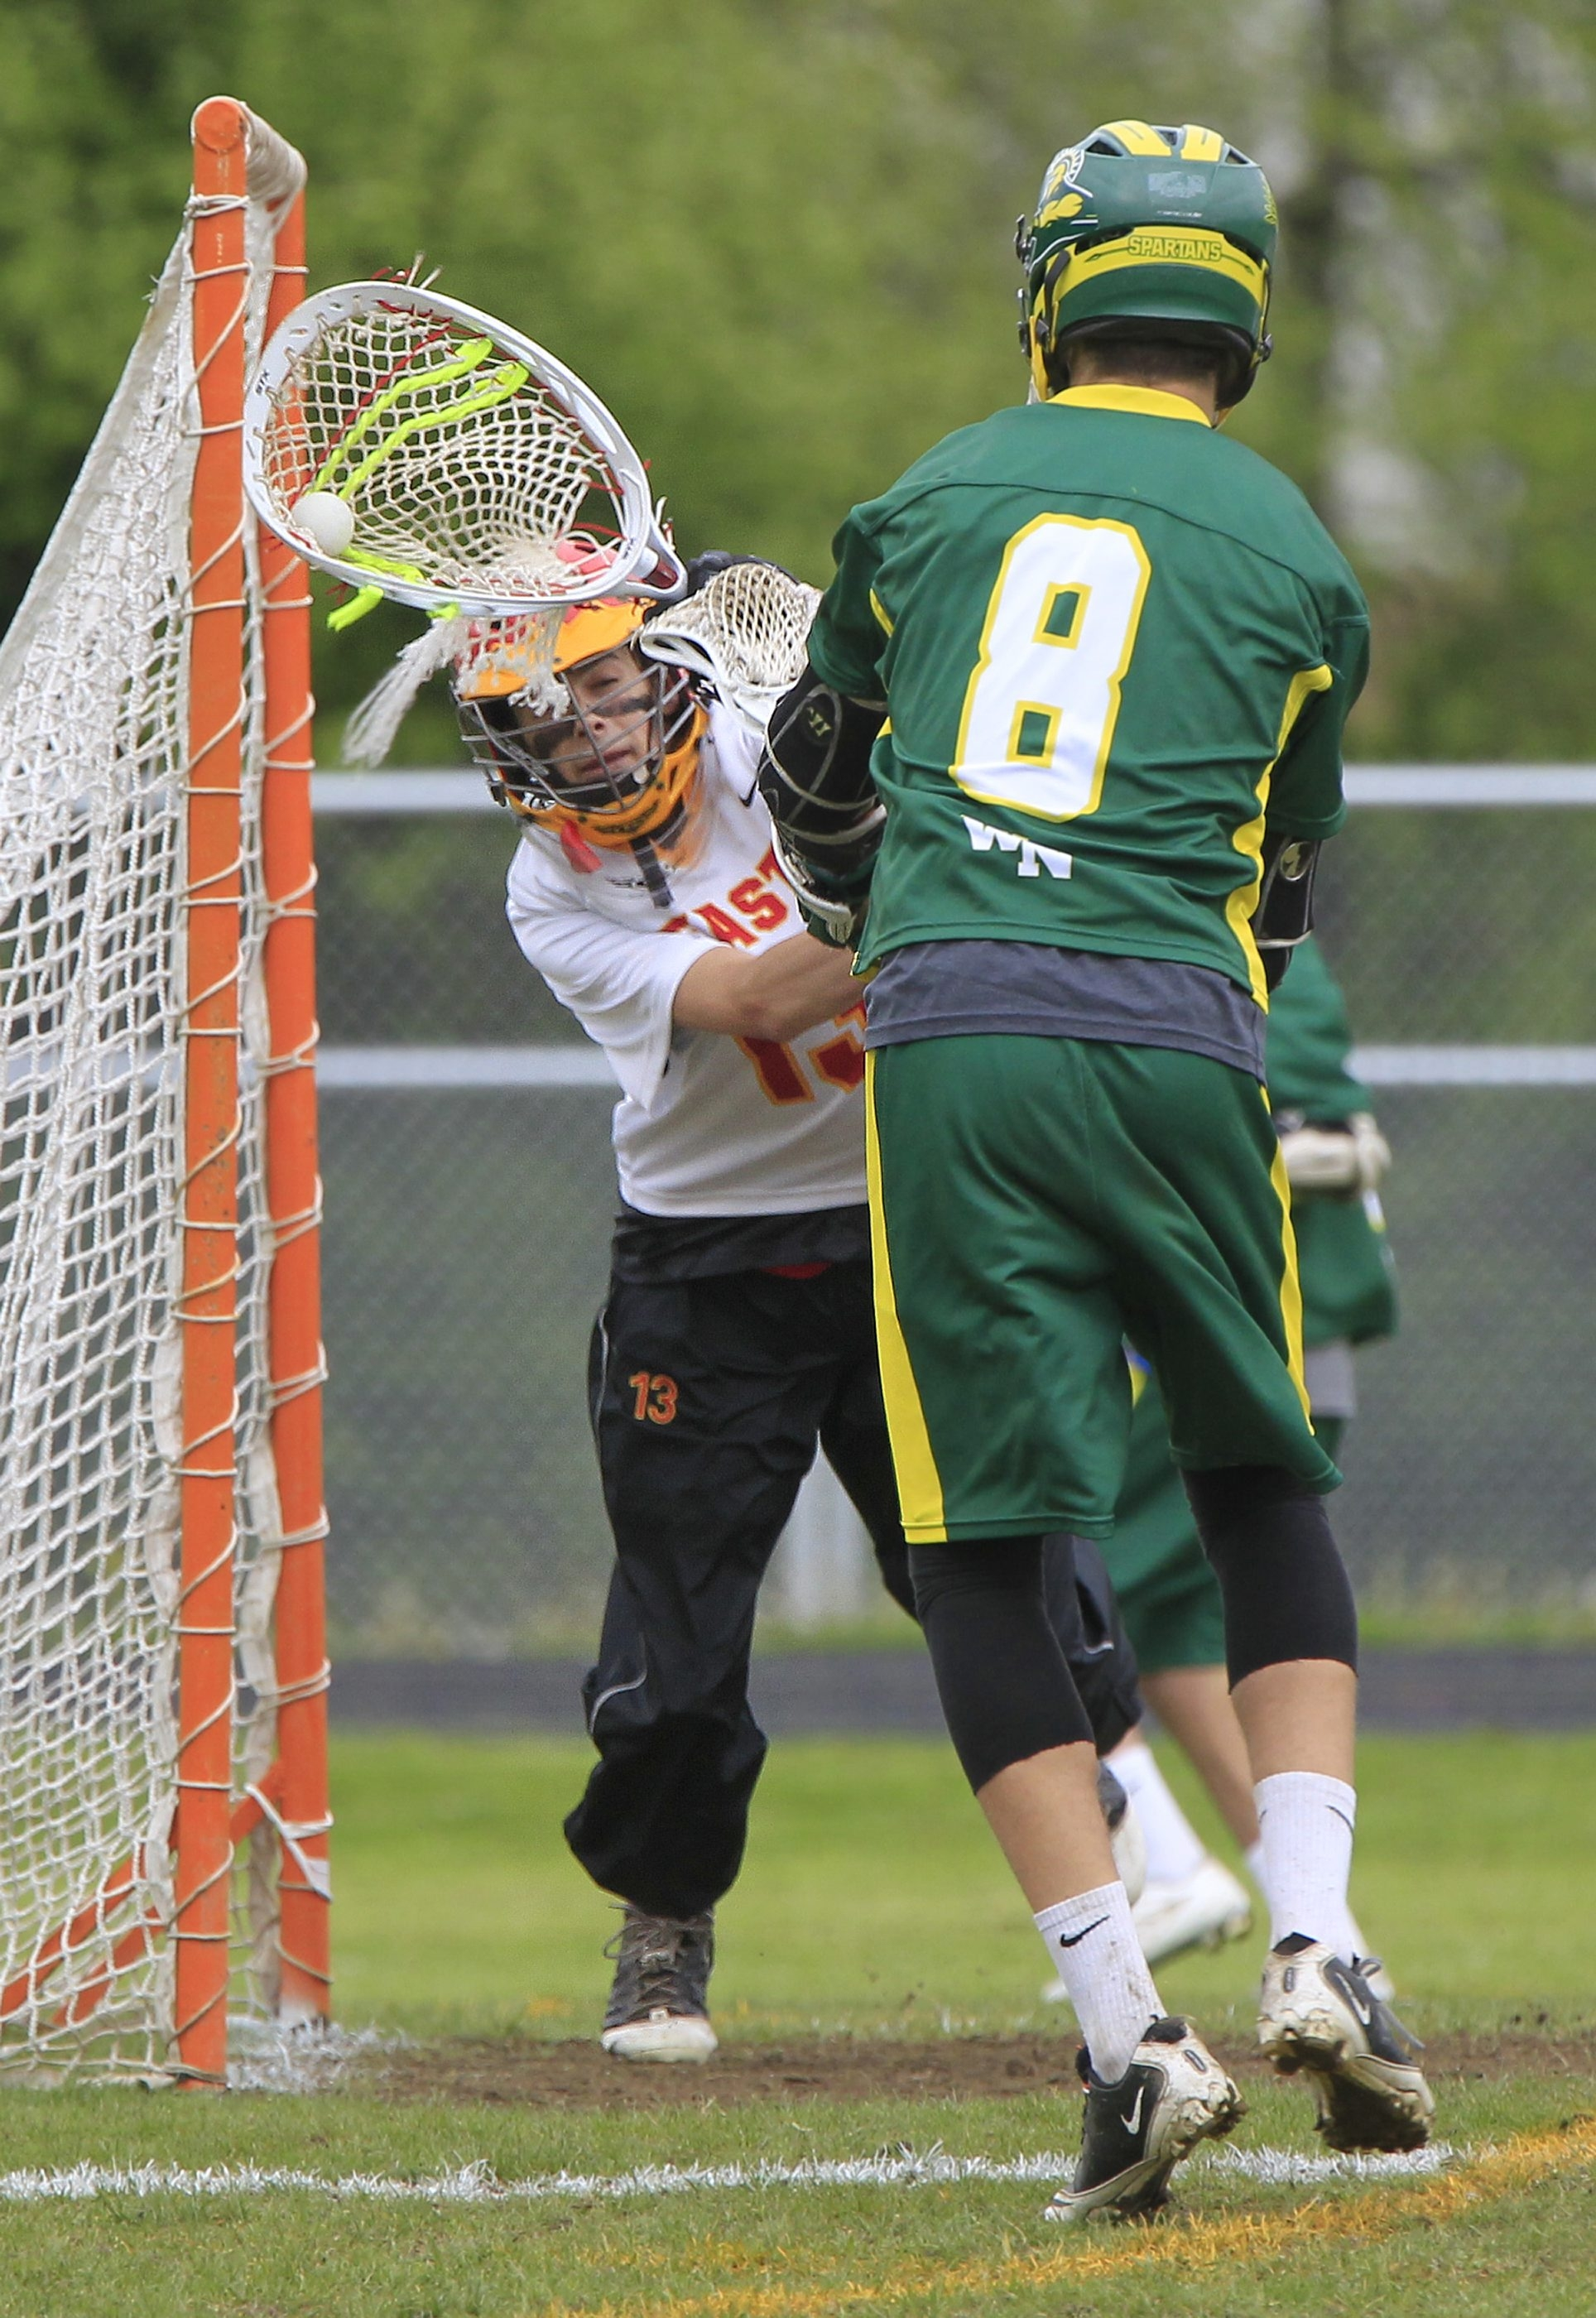 Williamsville East goaltender Connor Lalime (13) makes a save on Williamsville North player Chad Steinwachs in a win by East, 11-9.